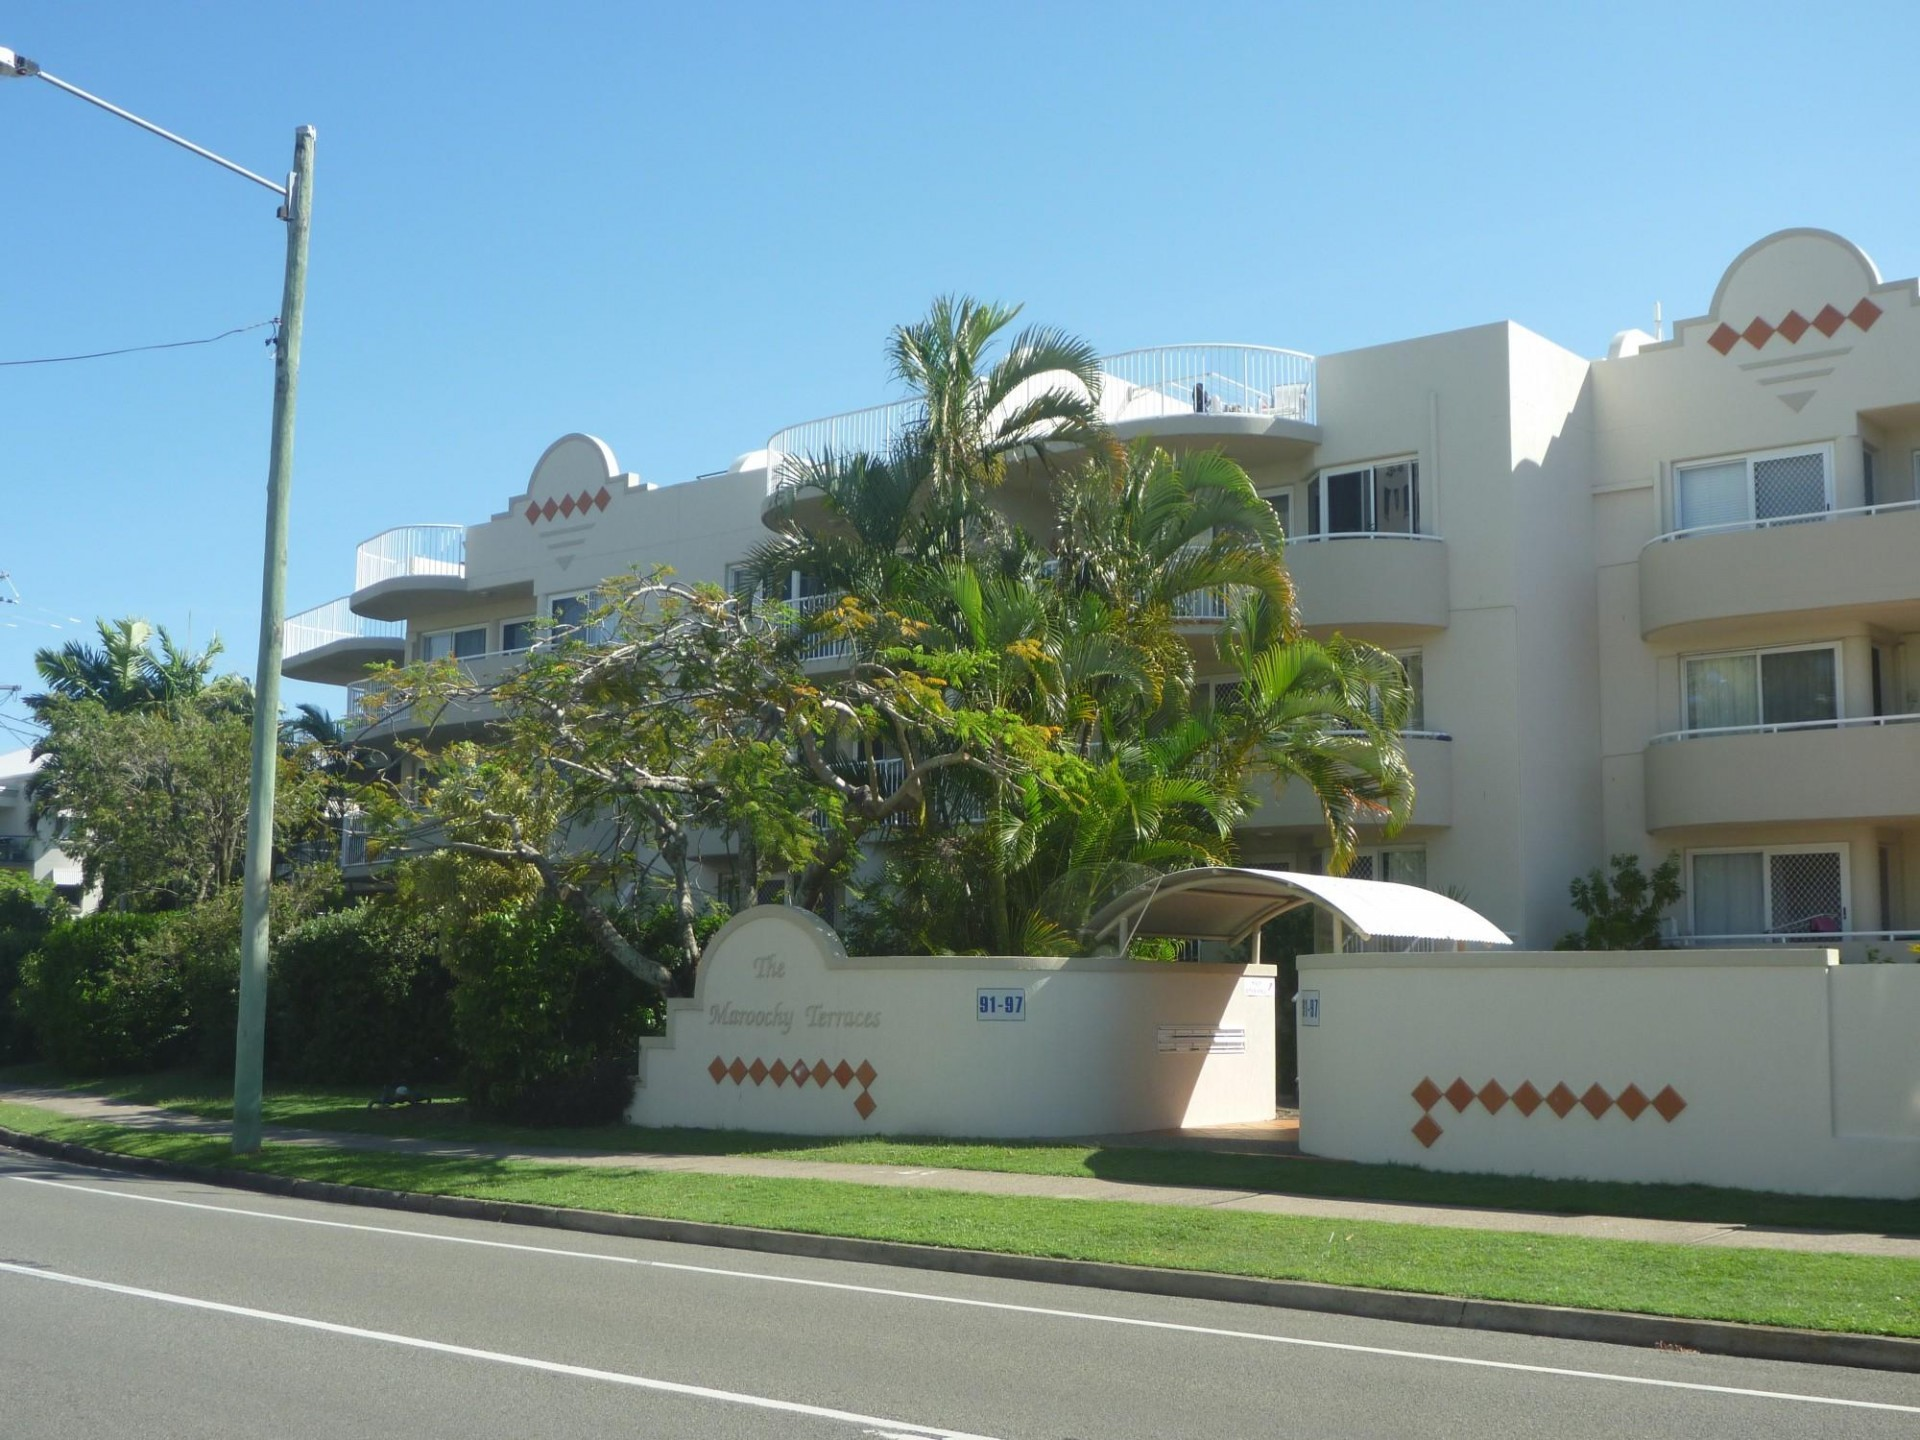 CLOSE TO RIVER, PLAZA AND OCEAN ST LOCATED ON DUPORTH AVE - 2 BR UNFURNISHED UNIT